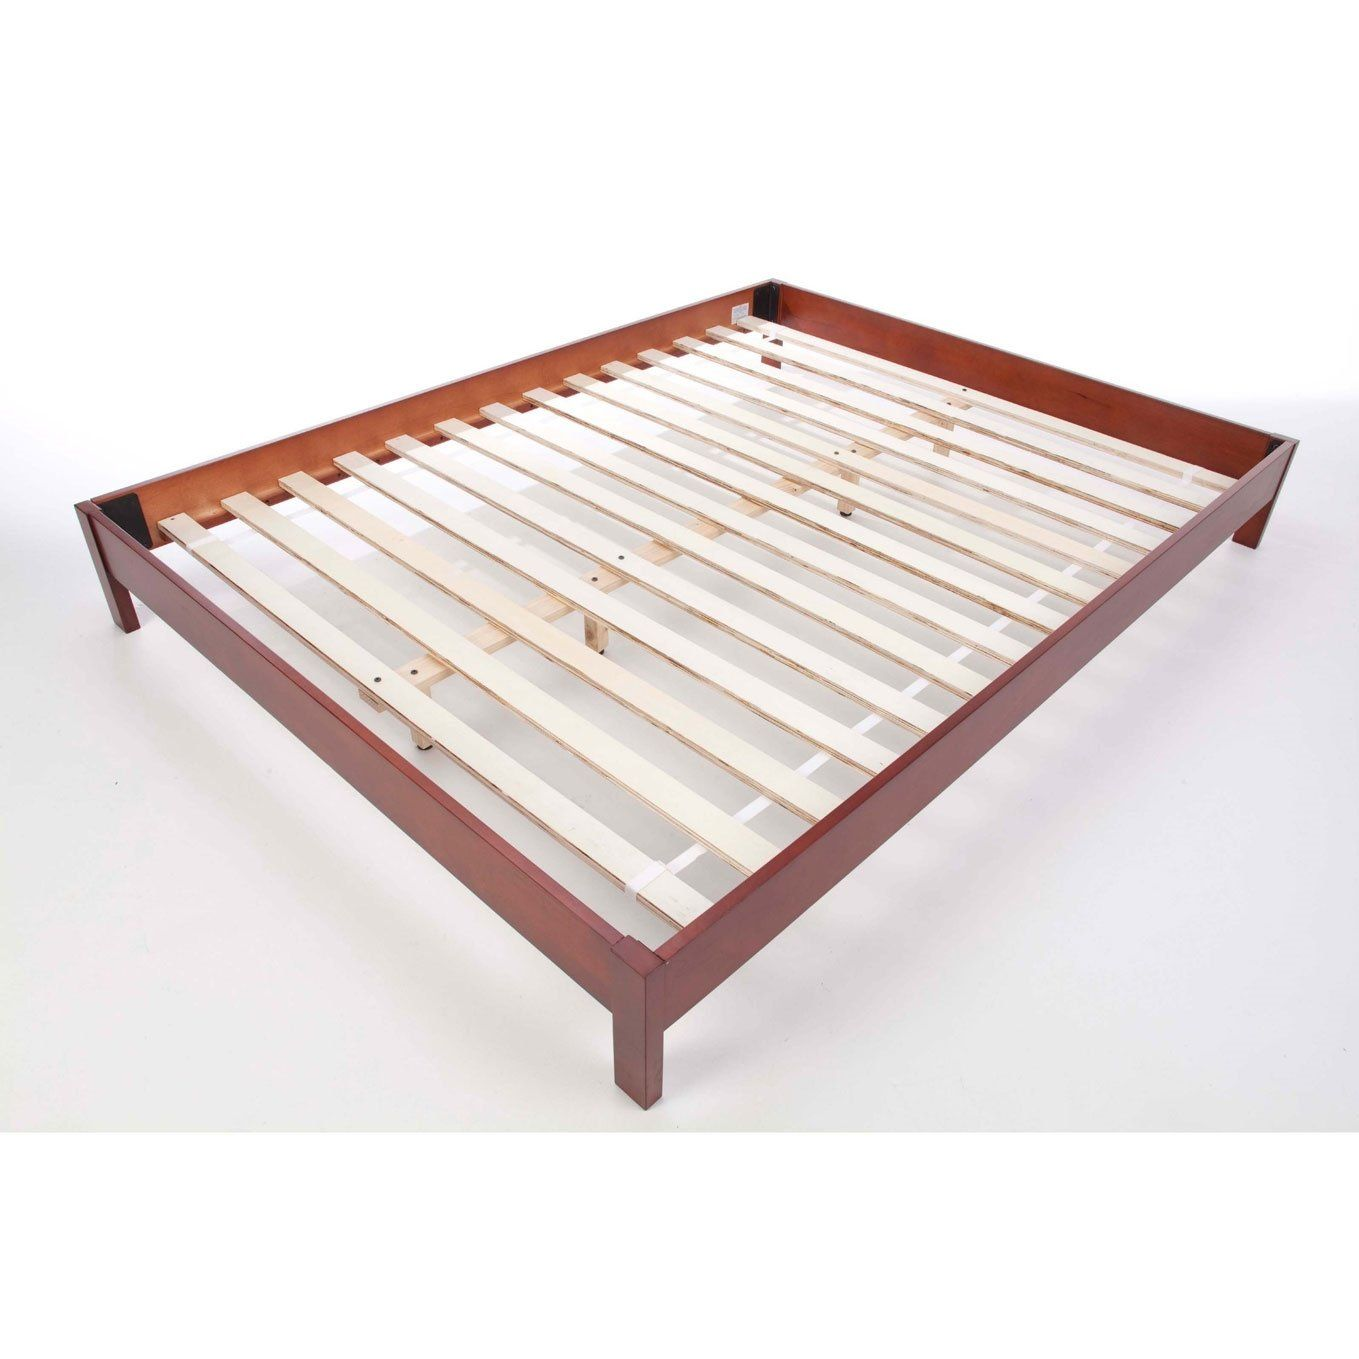 Queen Size Japanese Style Platform Bed Frame in Mahogany